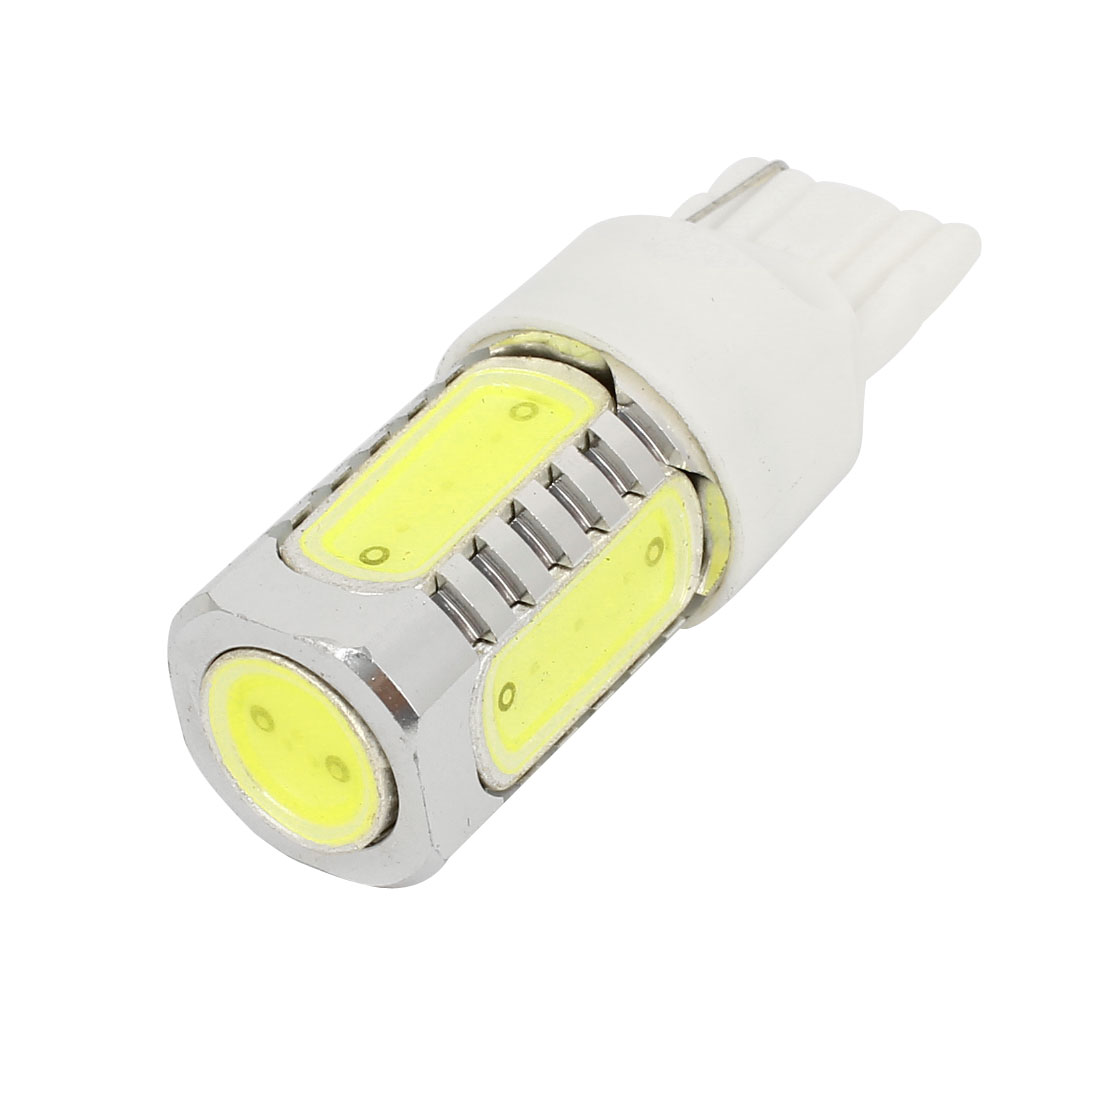 7440 5 SMD LED Car DRL Rear Turn Signal Light Headlamp Foglight White 12V 7.5W